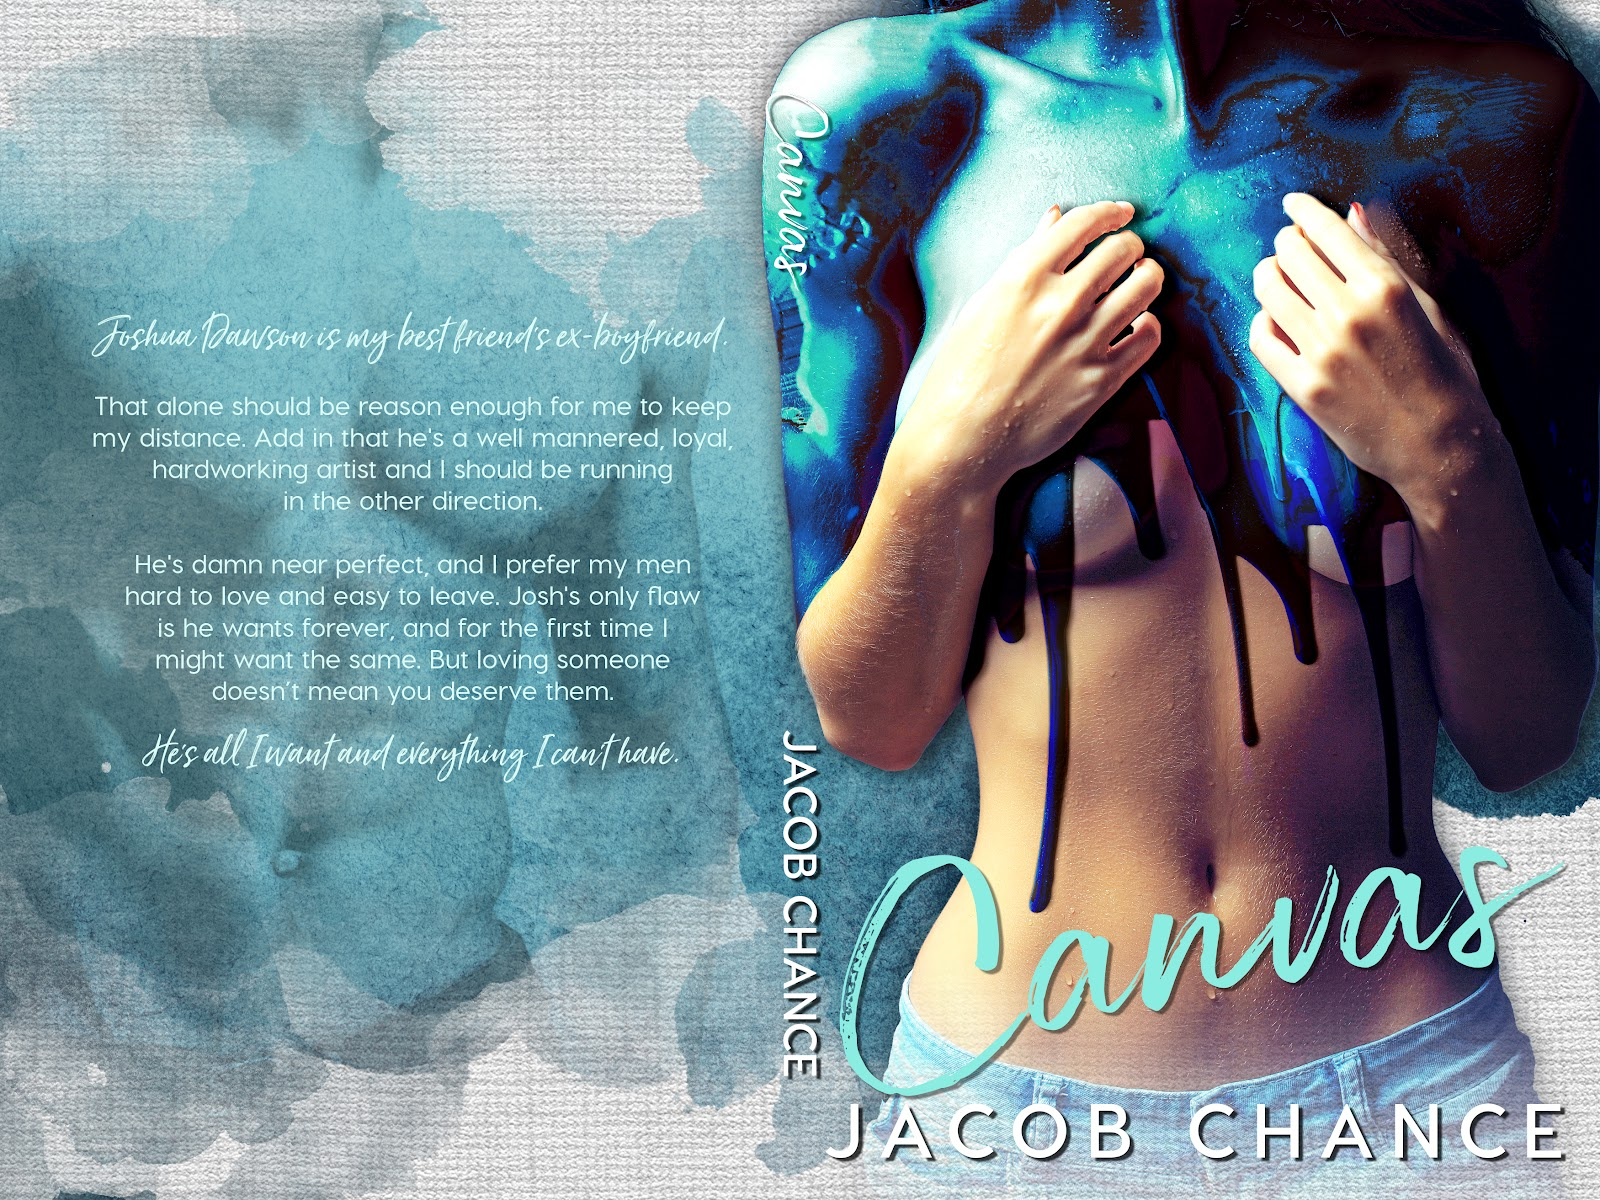 Canvas  Jacob Chance Paperback Cover FINAL.JPG